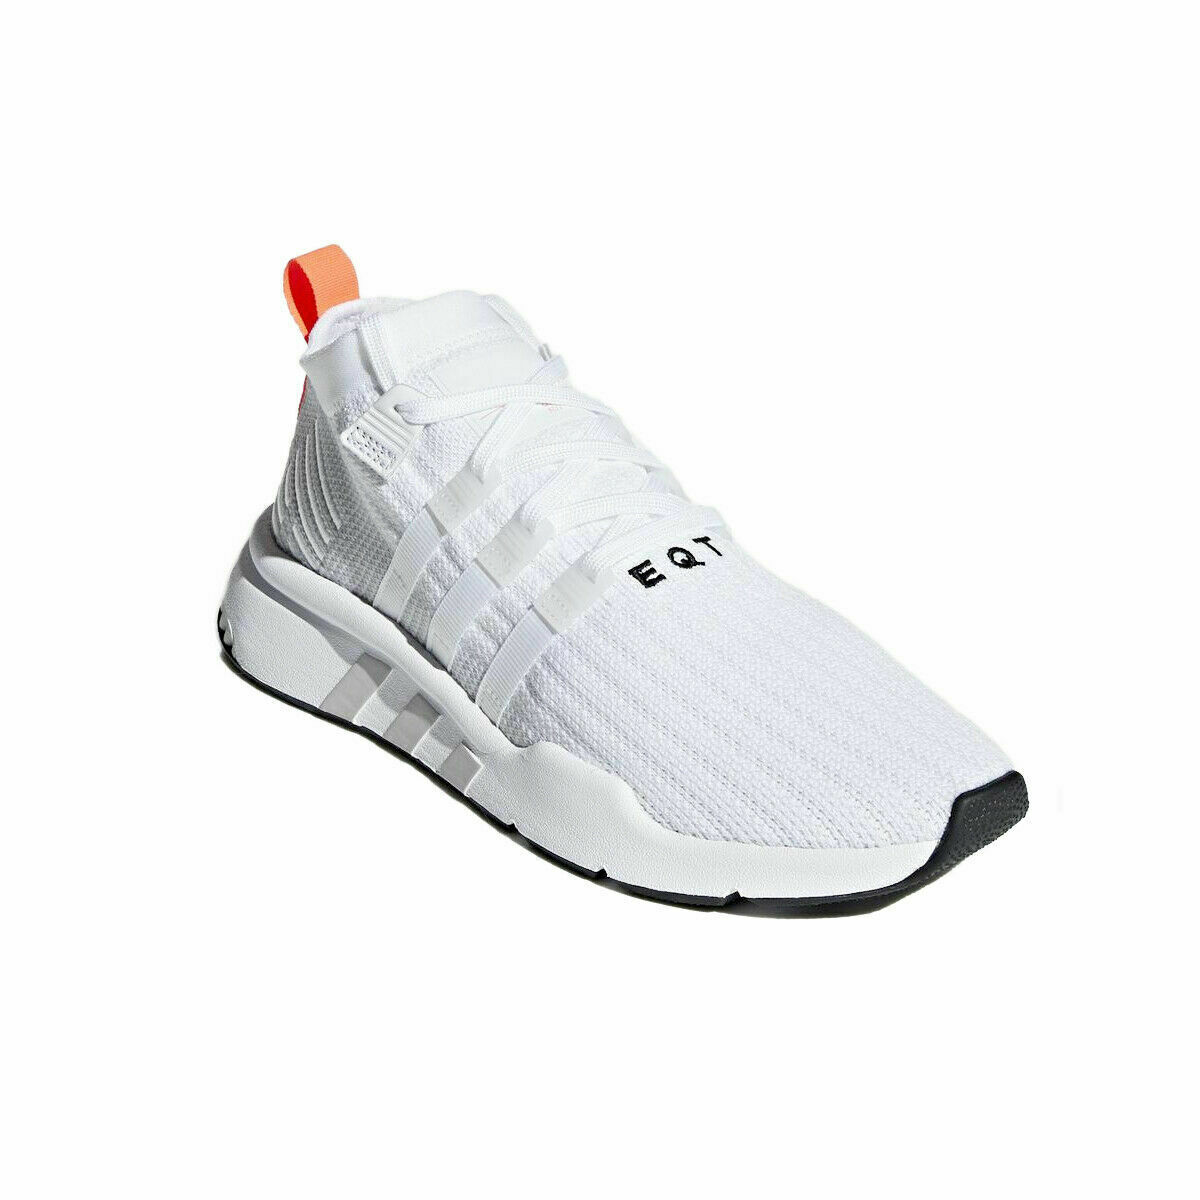 ADIDAS EQT SUPPORT MID ADV PK Sneakers CLOUD WHITE   GREY   CORE BLACK New